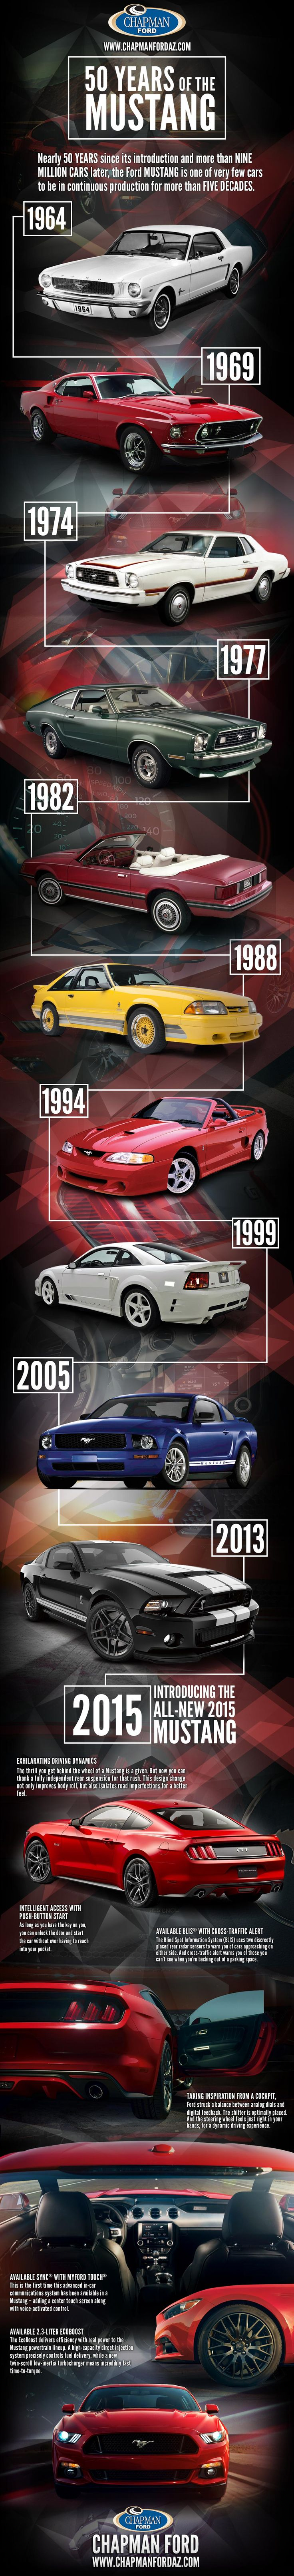 50 años del Ford Mustang resumidos en un poster de Leah Cook of Chapman Automotive Group.